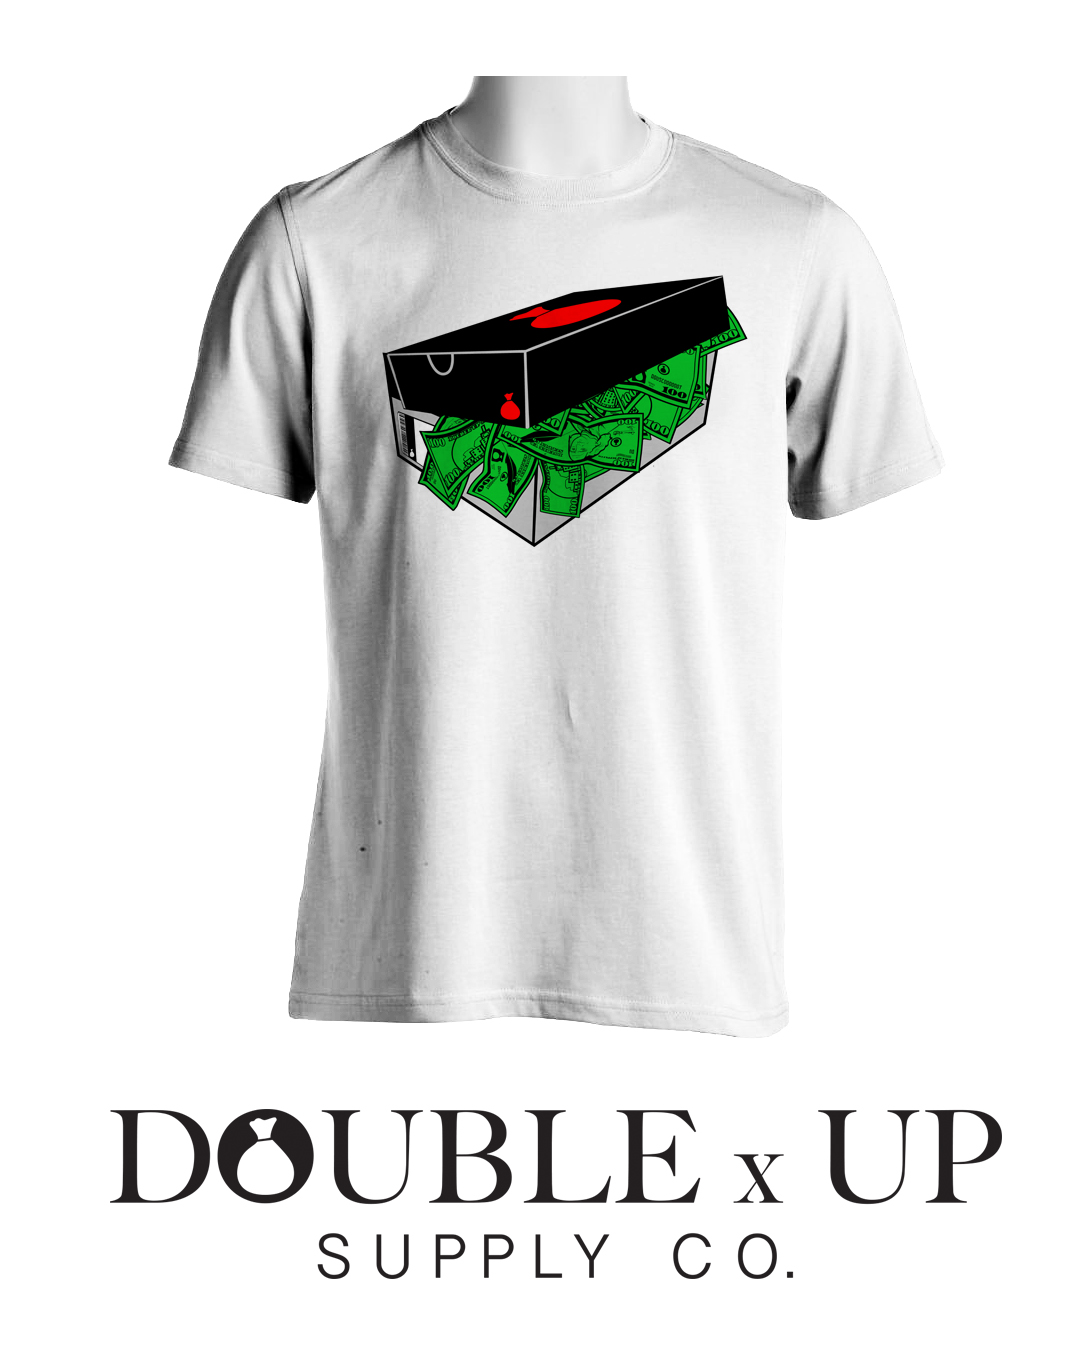 Shoe box money t shirt double up supply company online for How to make a shirt with money